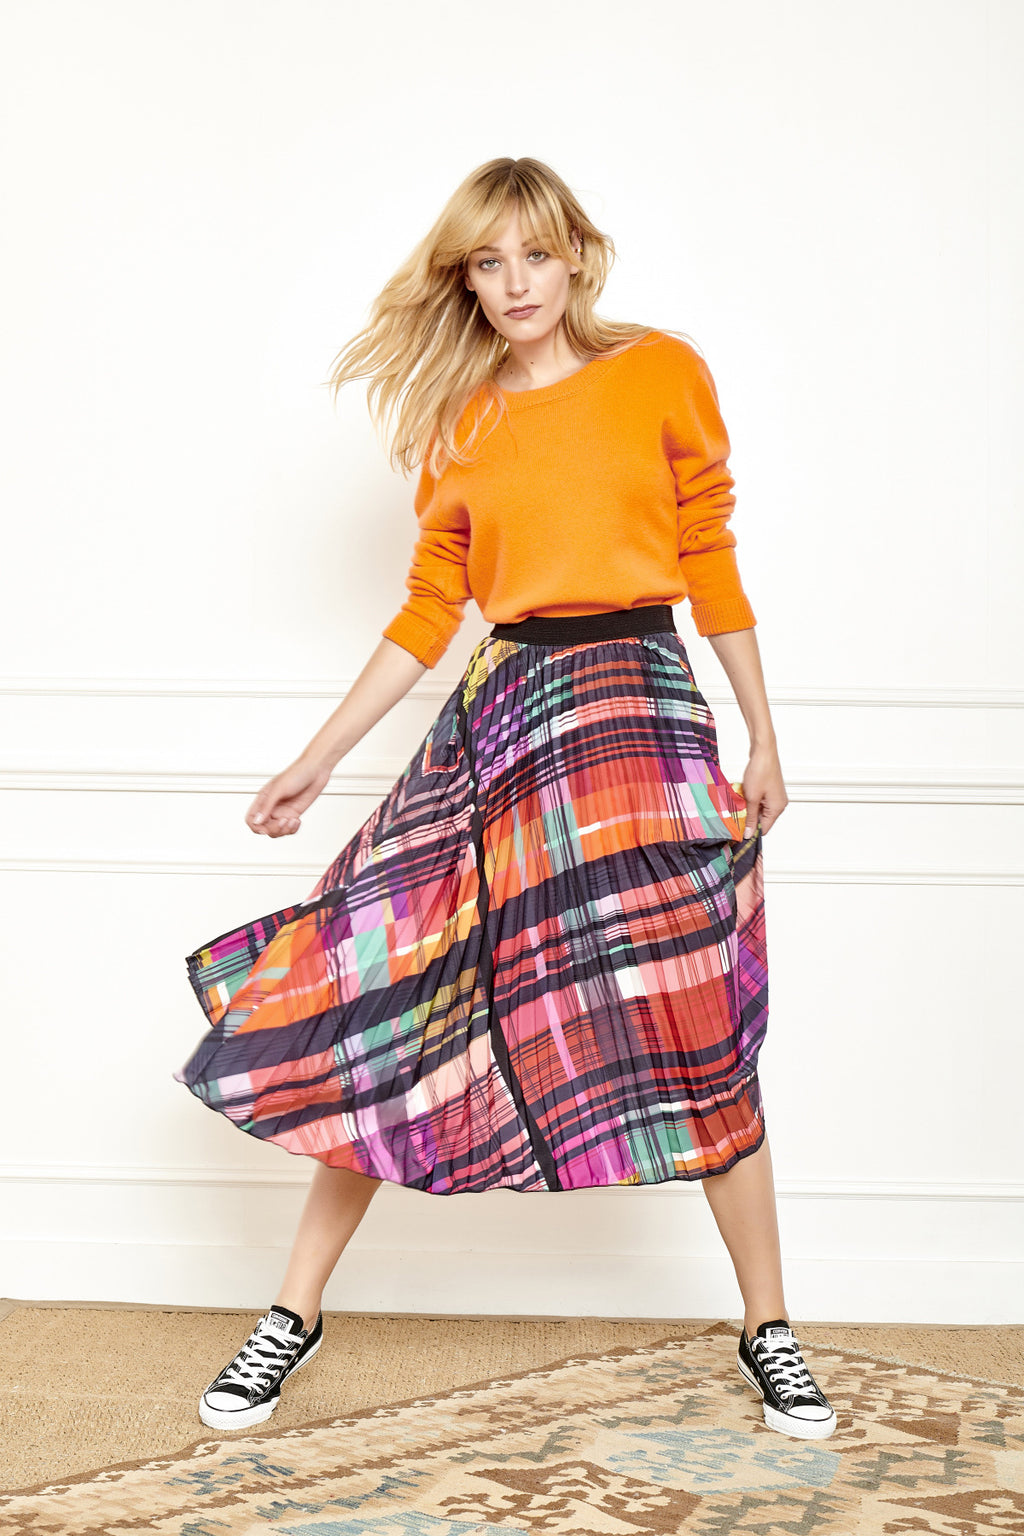 MKT Studio Jia Pleated Skirt - Multicolour